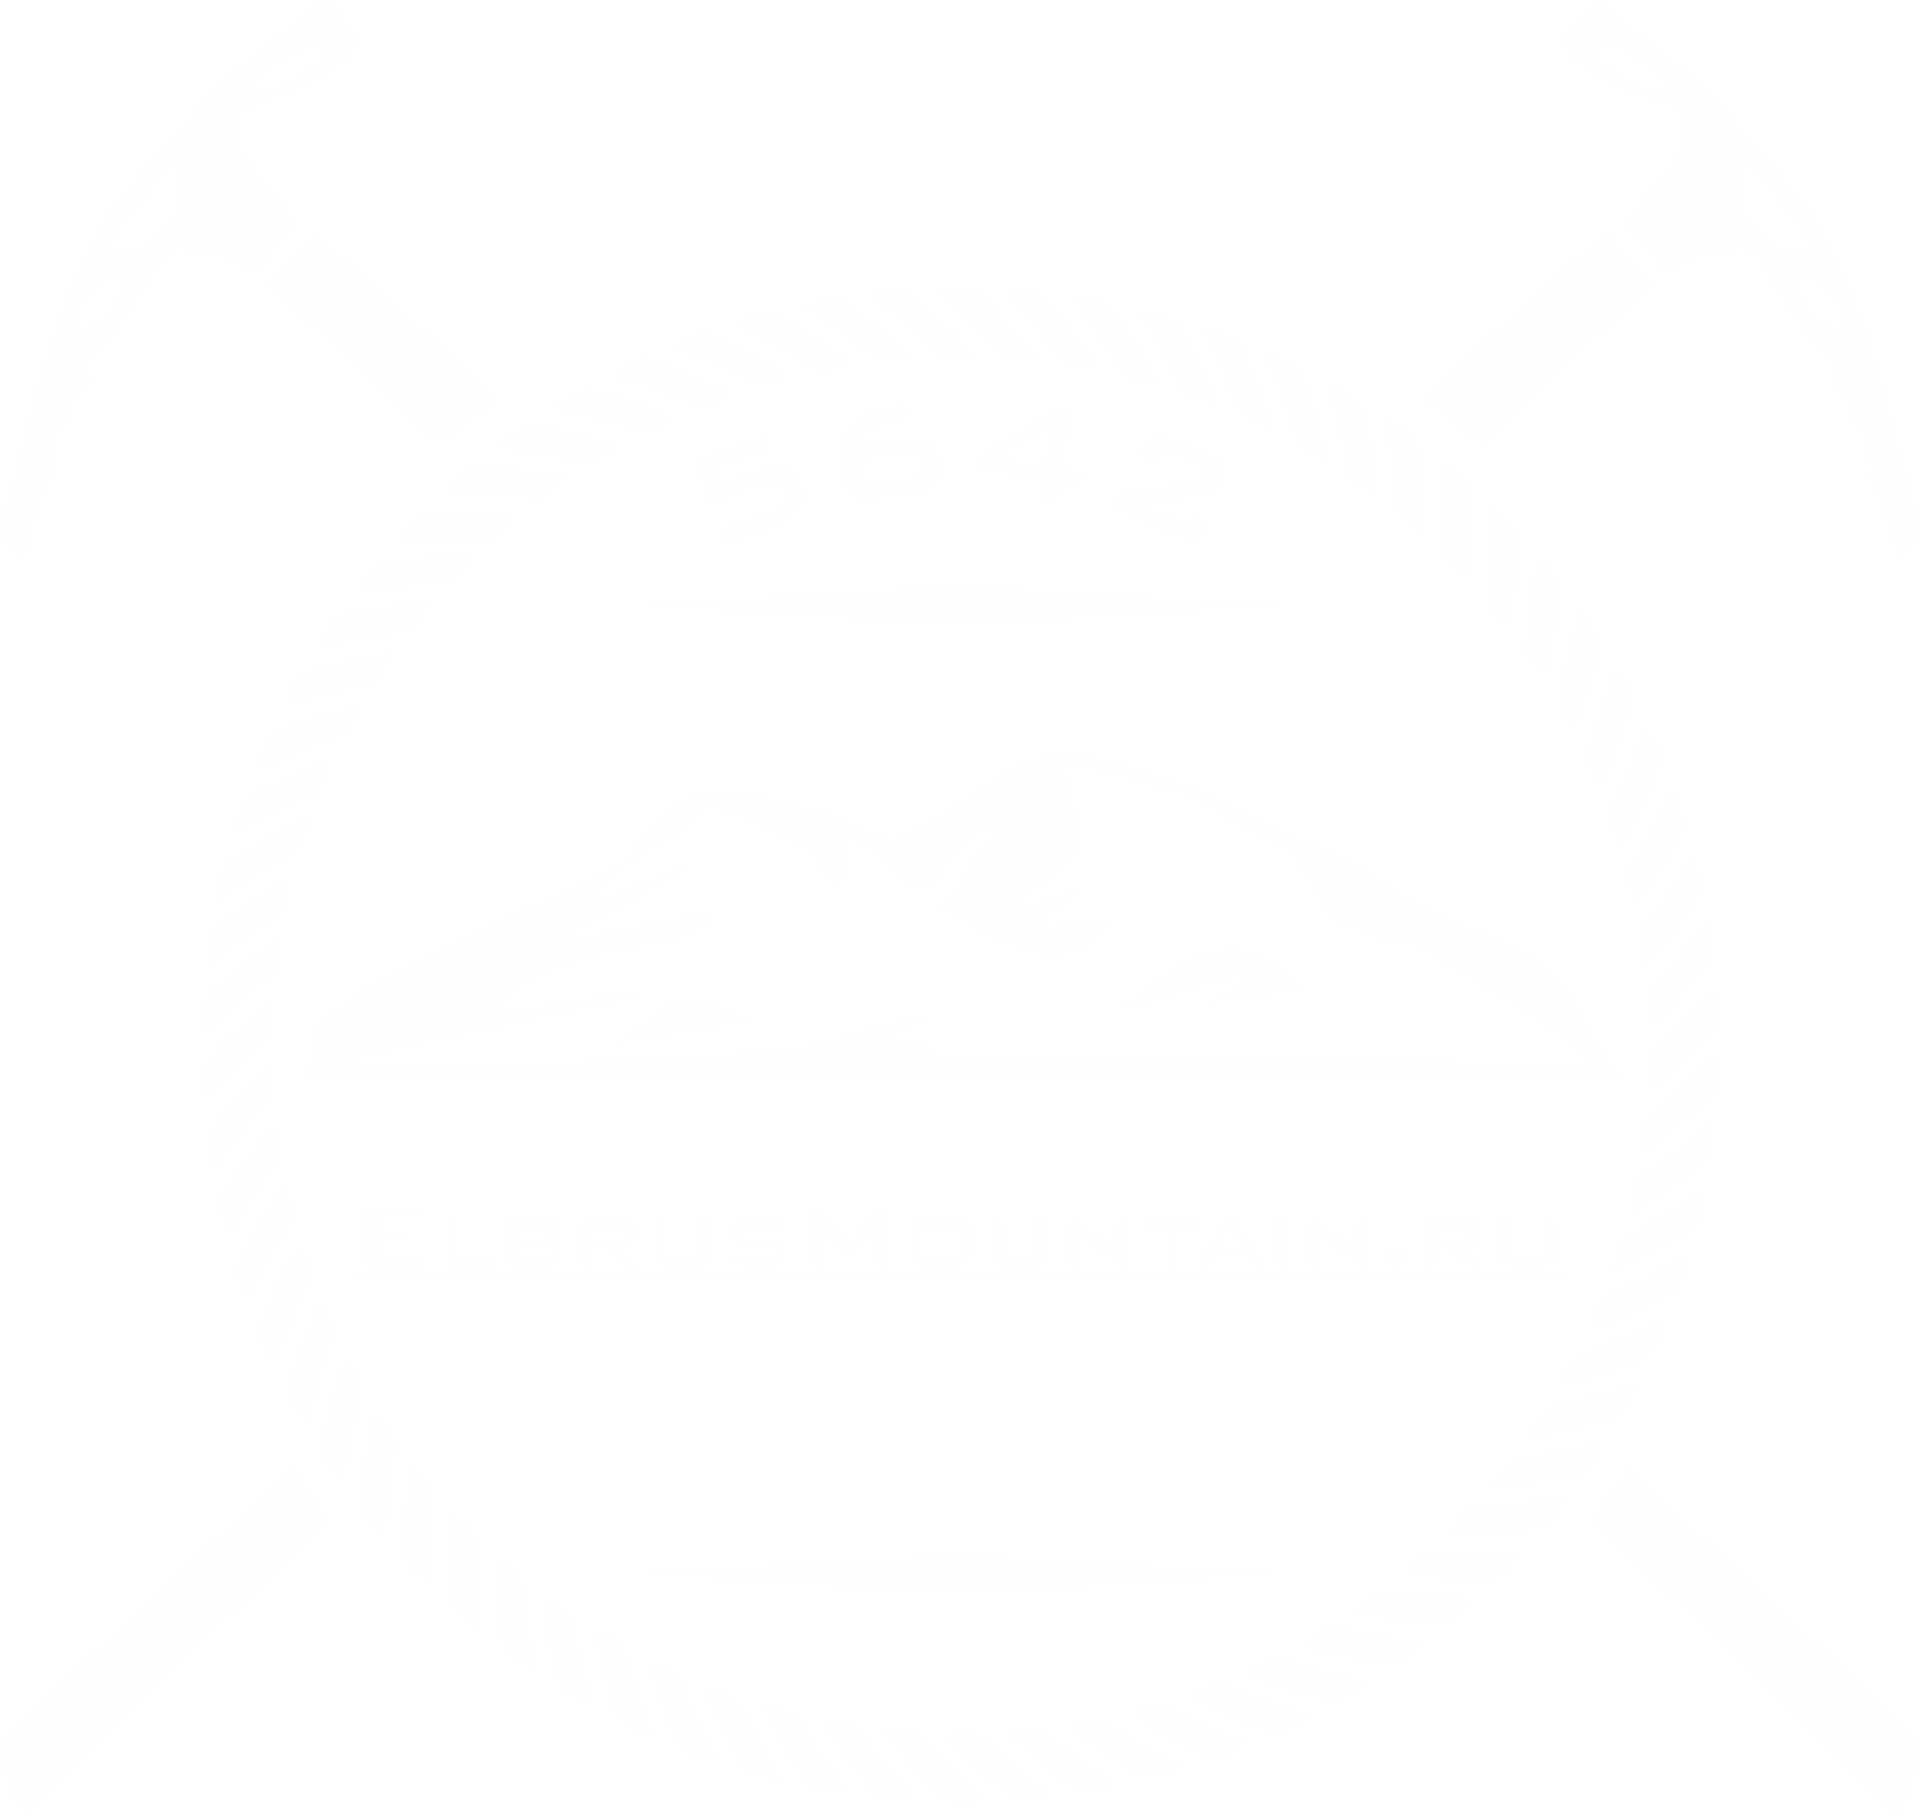 ElbrusMountain team